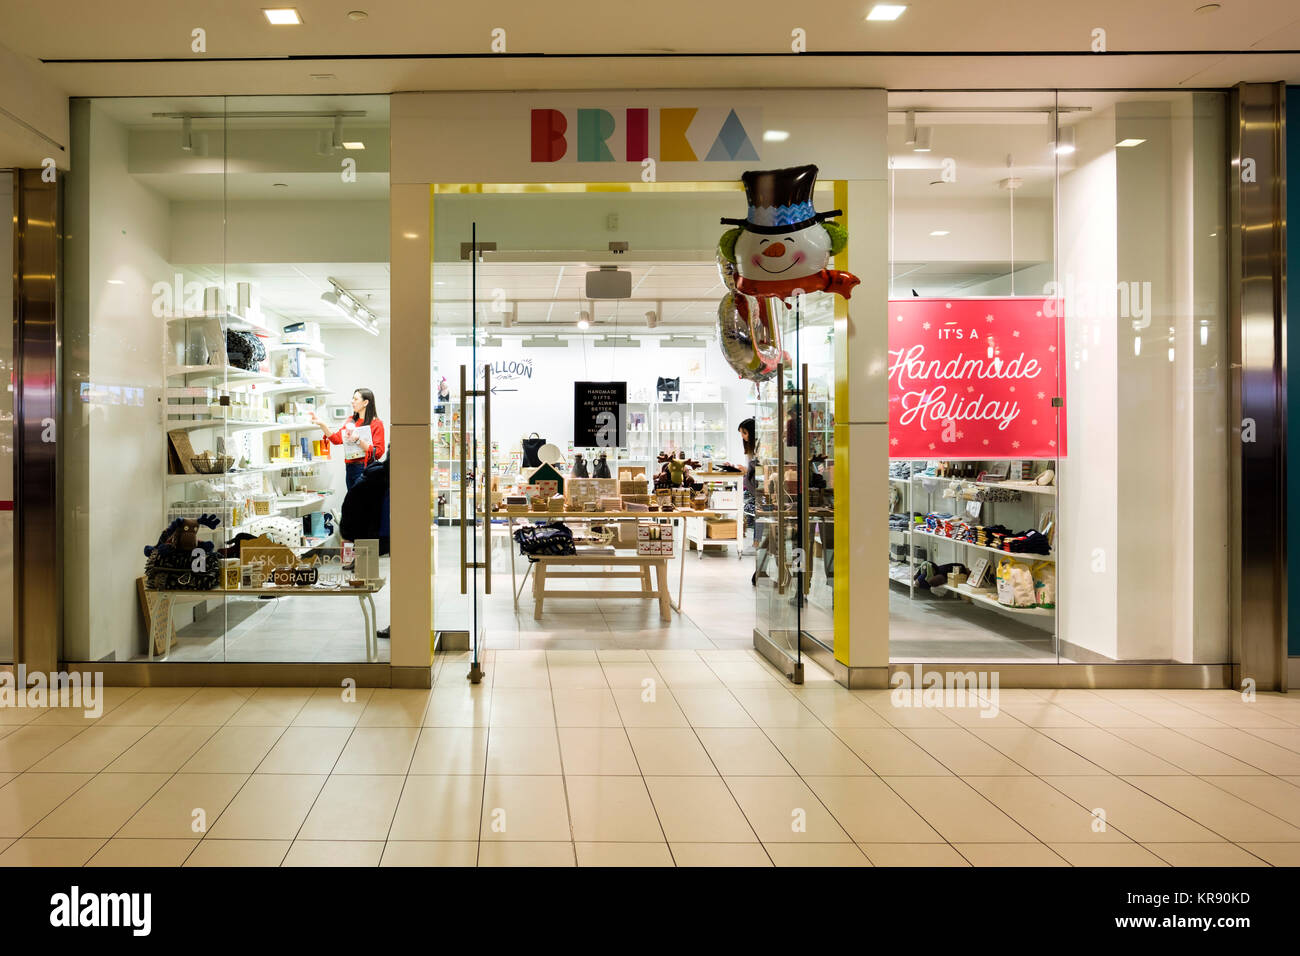 Brika craft store shopfront at Richmond-Adelaide Centre, PATH underground network, Toronto, Ontario, Canada. - Stock Image